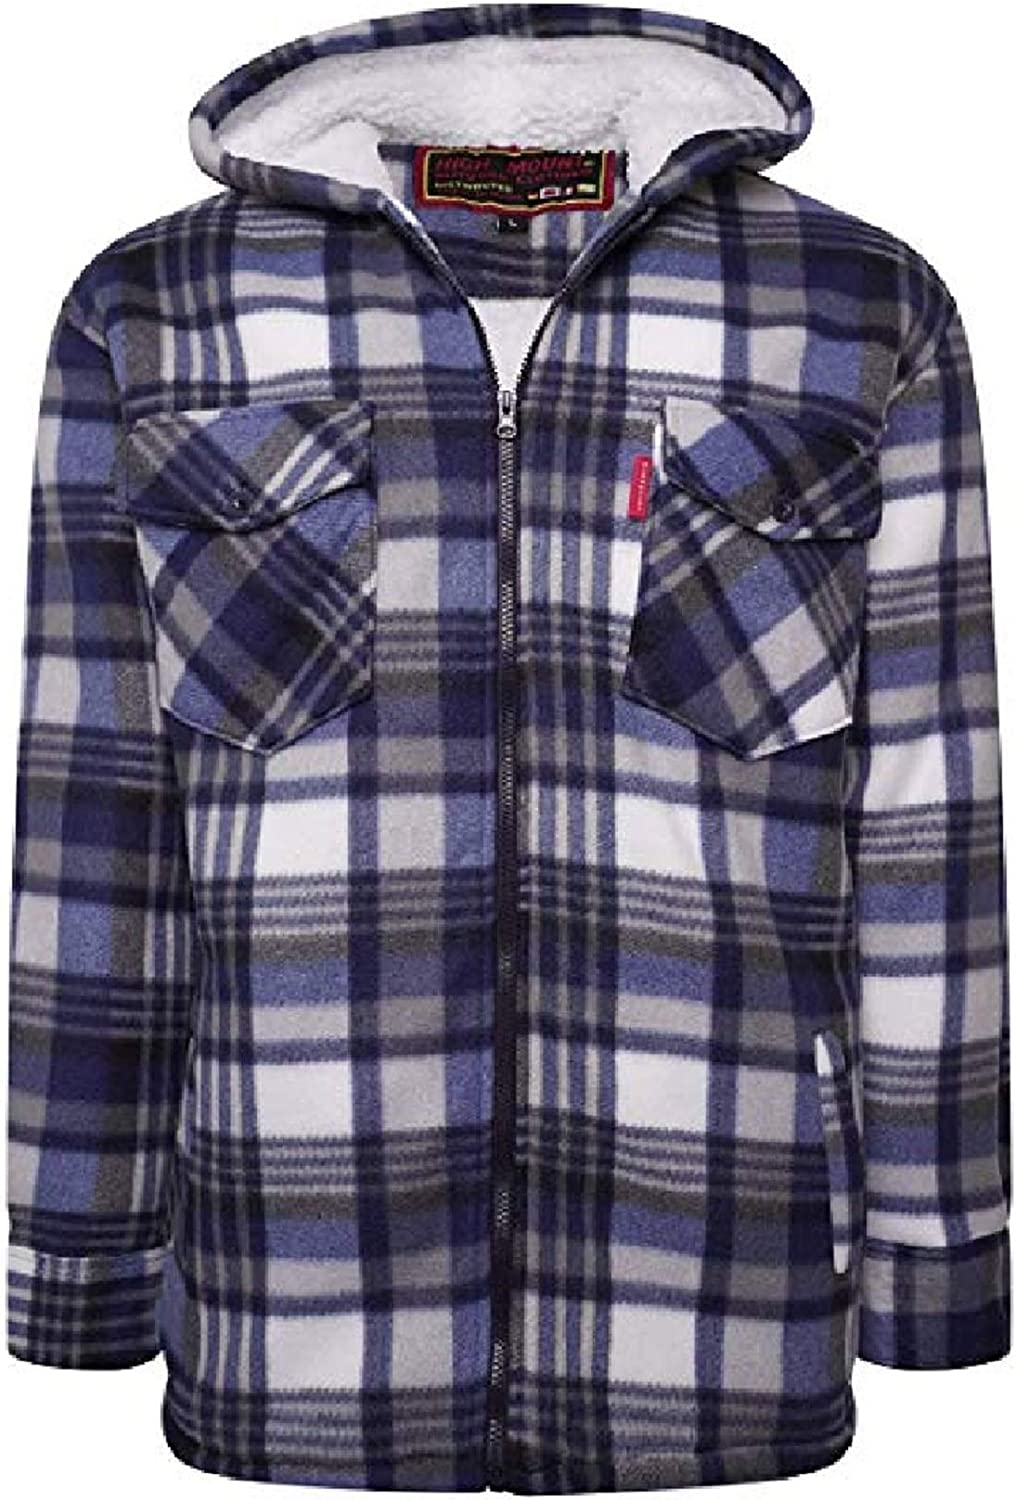 Shop Online Mens Padded Check Shirt Fur Lumberjack Collared Quilted Jacket Warm Thermal Casual Workwear Top Fleece Lumber Jack Padded Shirts